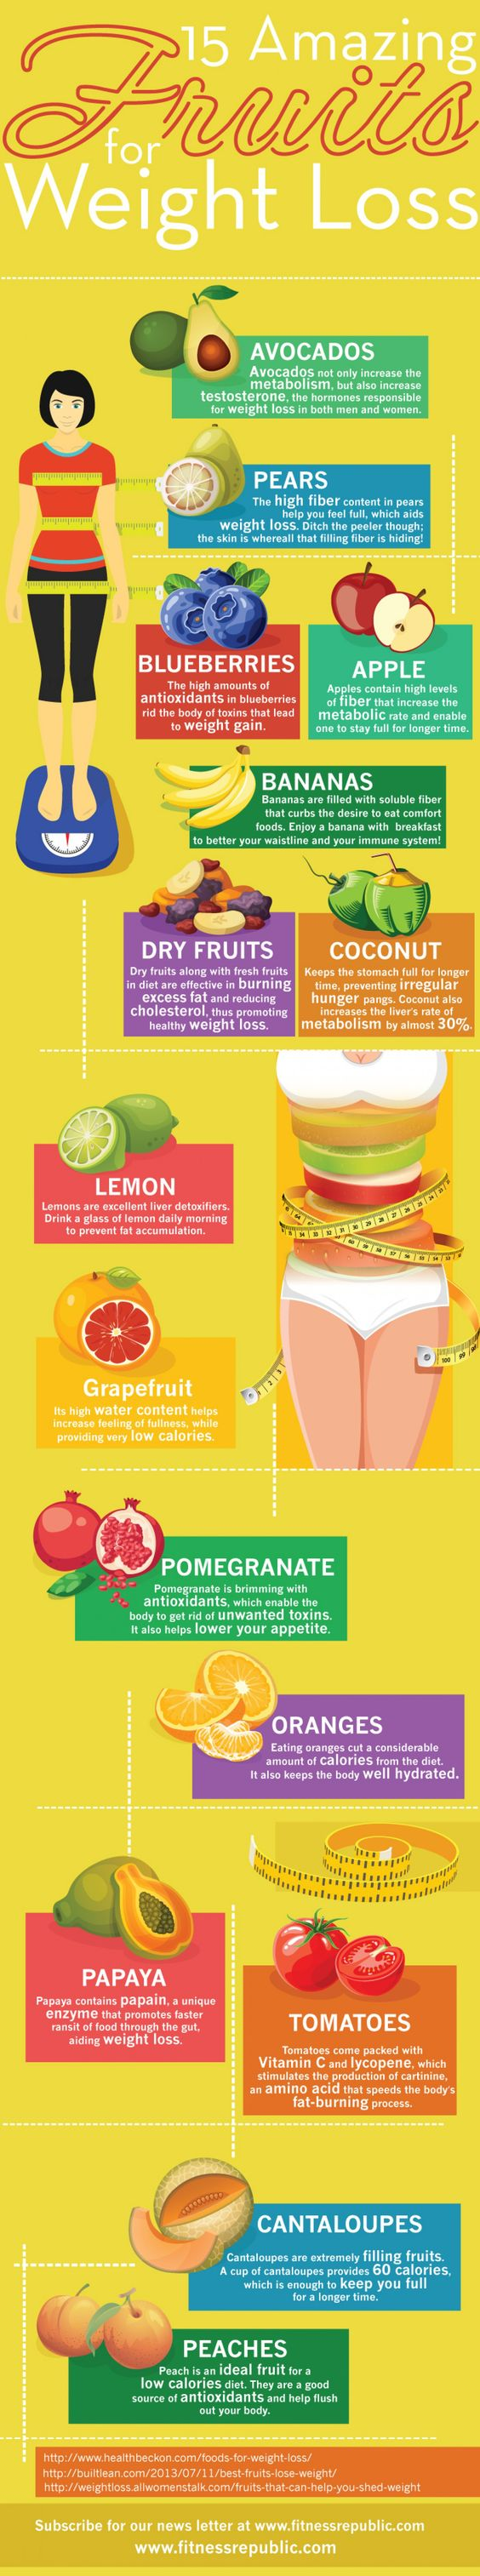 healthy fruit smoothies to lose weight heart healthy fruits and vegetables